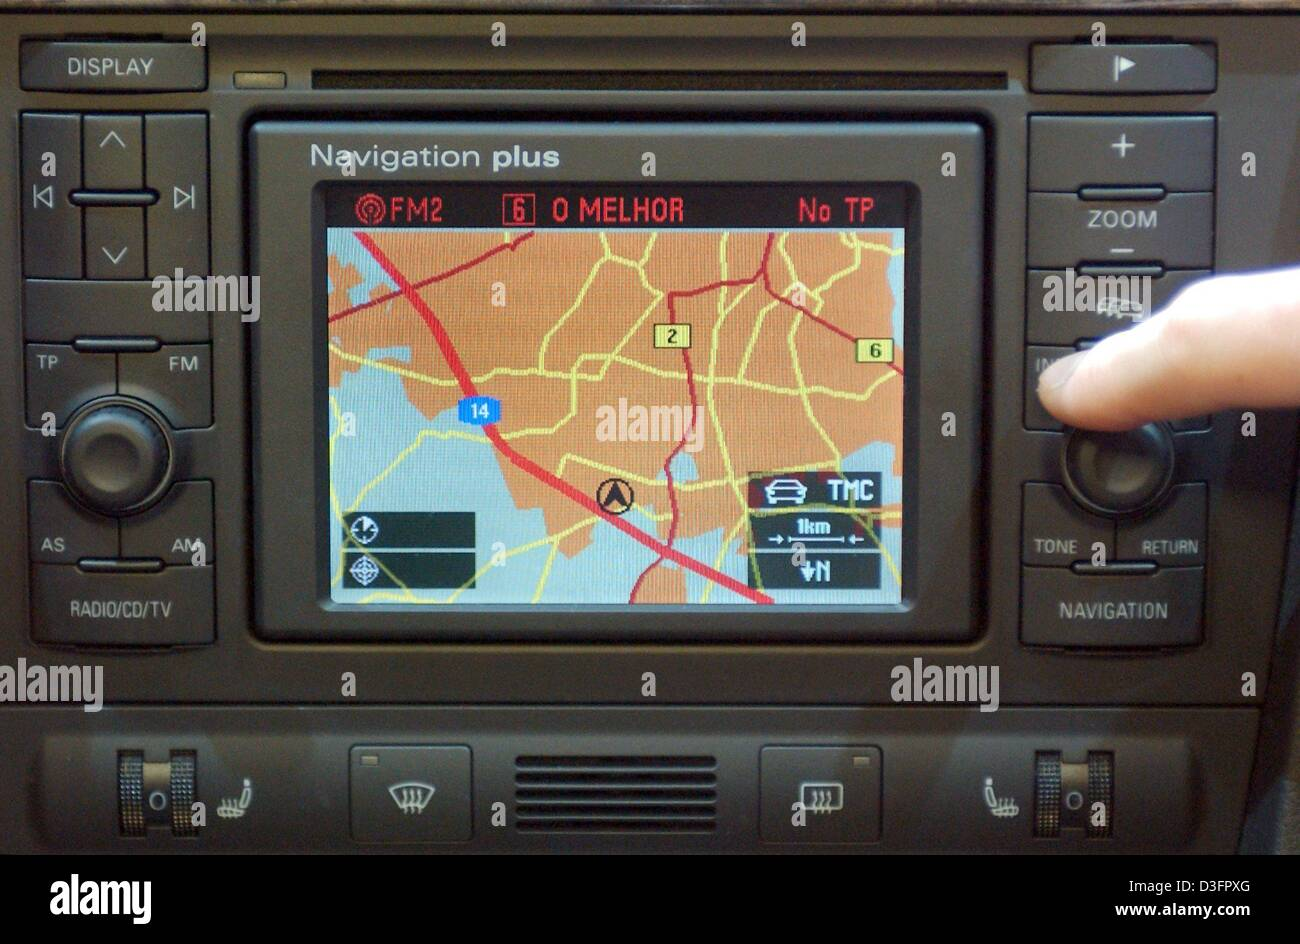 (dpa) - A navigation system is seen in the cockpit of an Audi car, pictured at the AMI (Auto Mobil International) - Stock Image